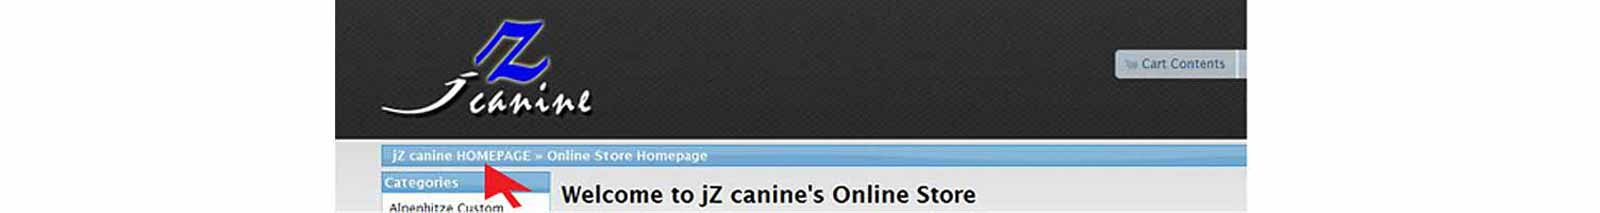 jZ Canine store header screenshot.